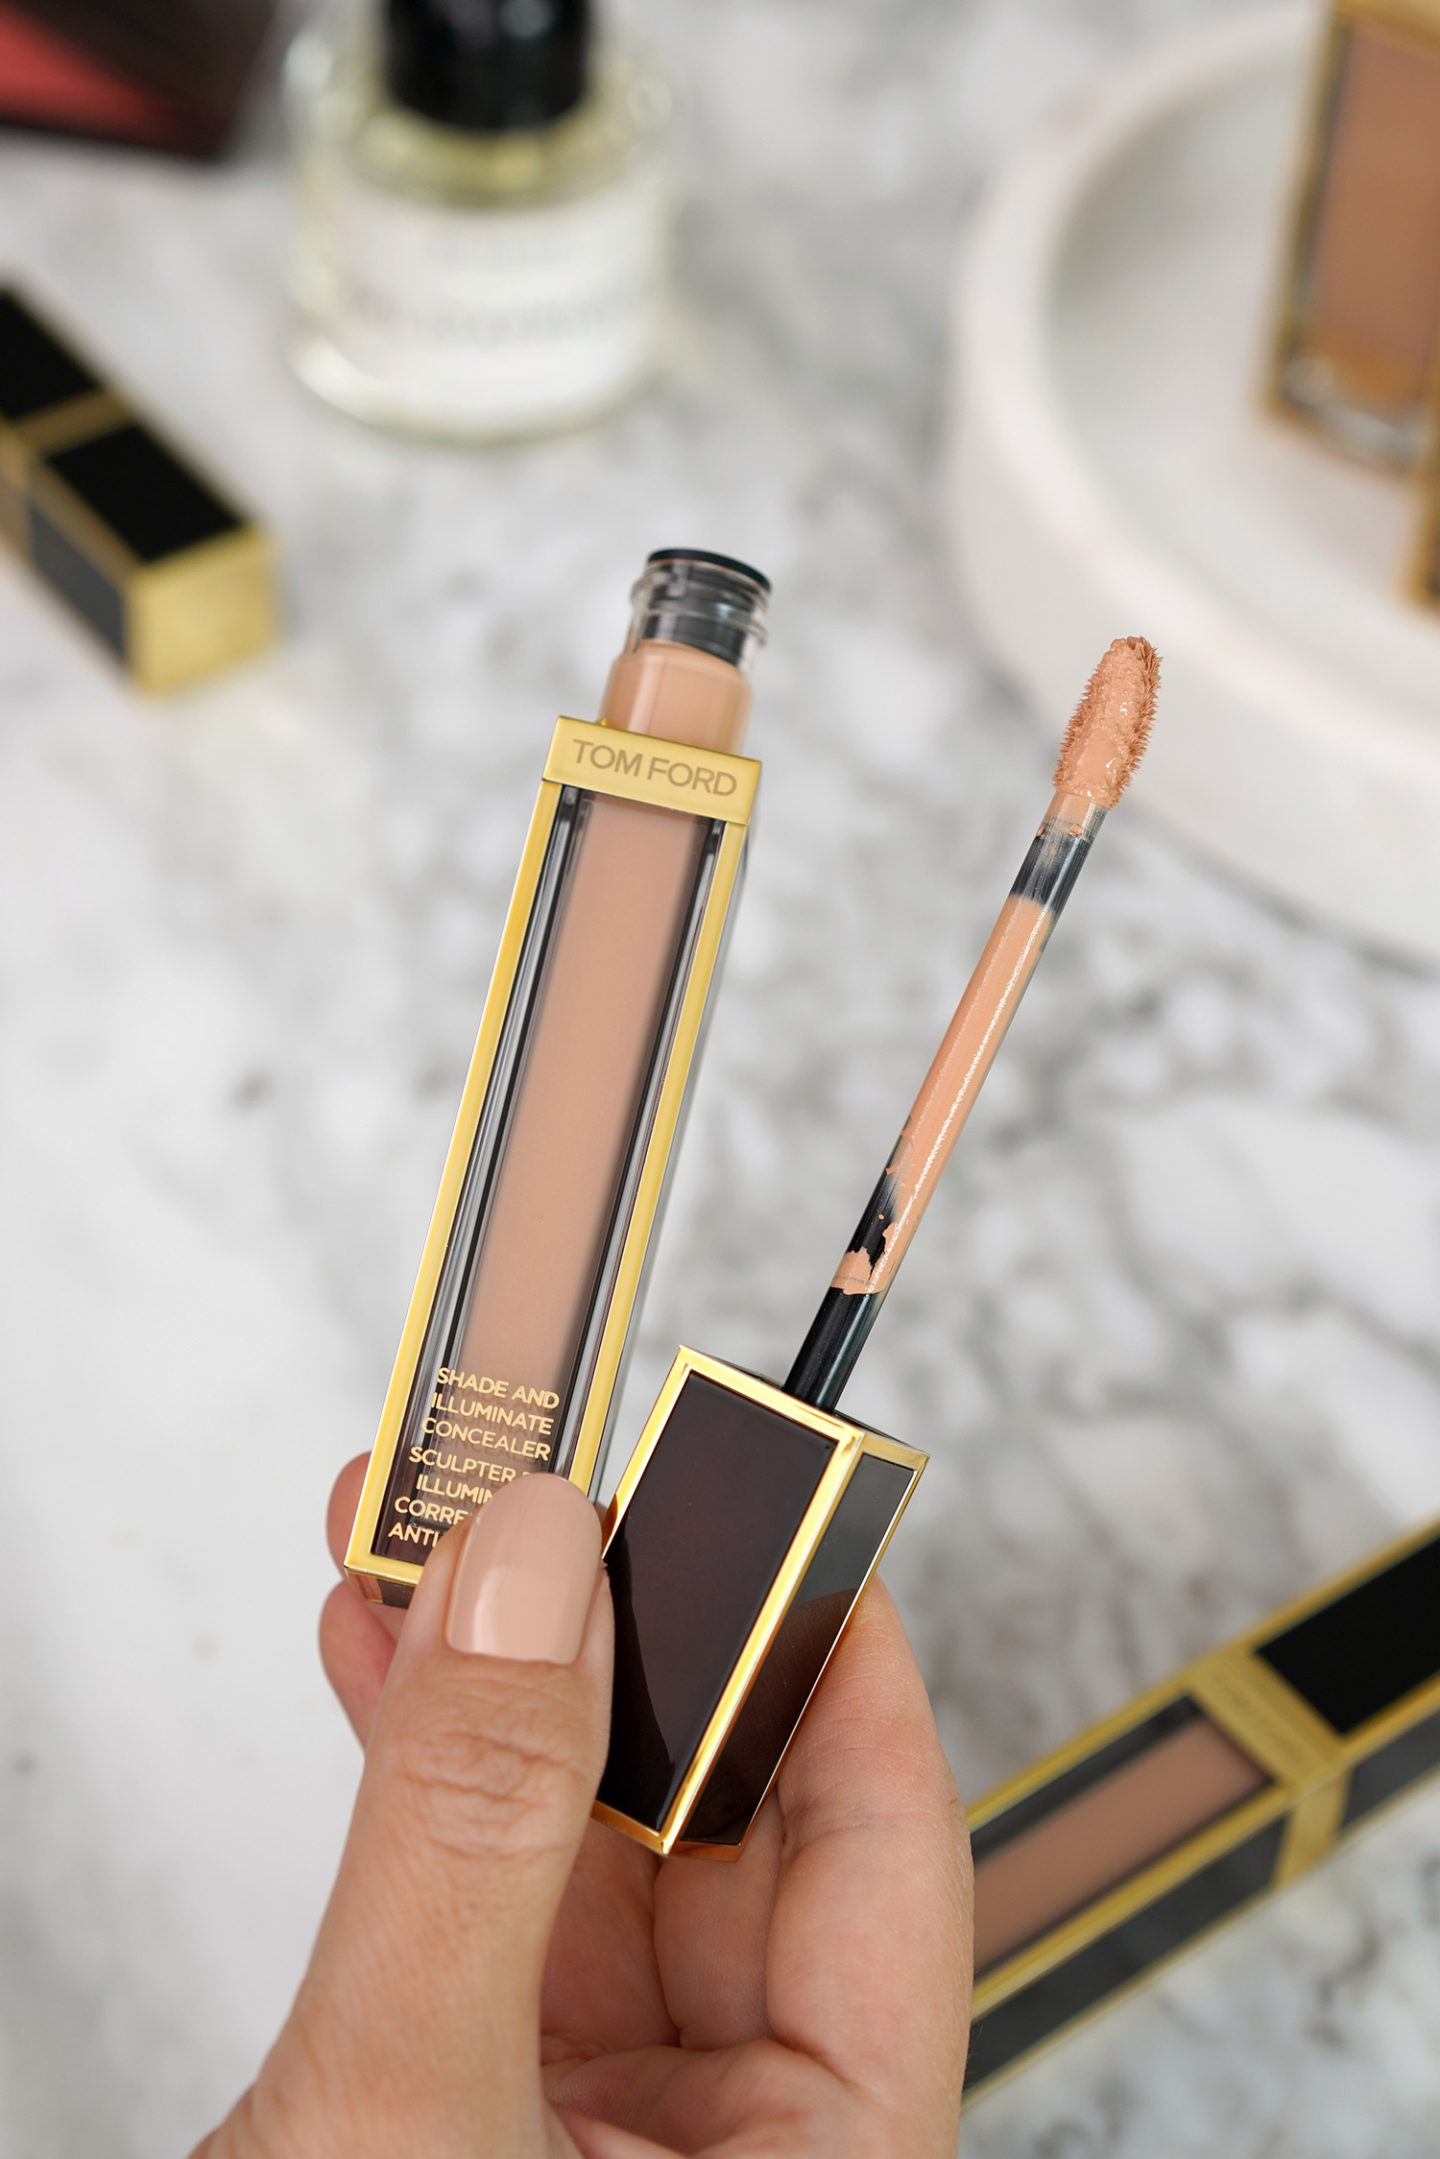 Tom Ford Shade and Illuminate Concealer 3W0 Latte